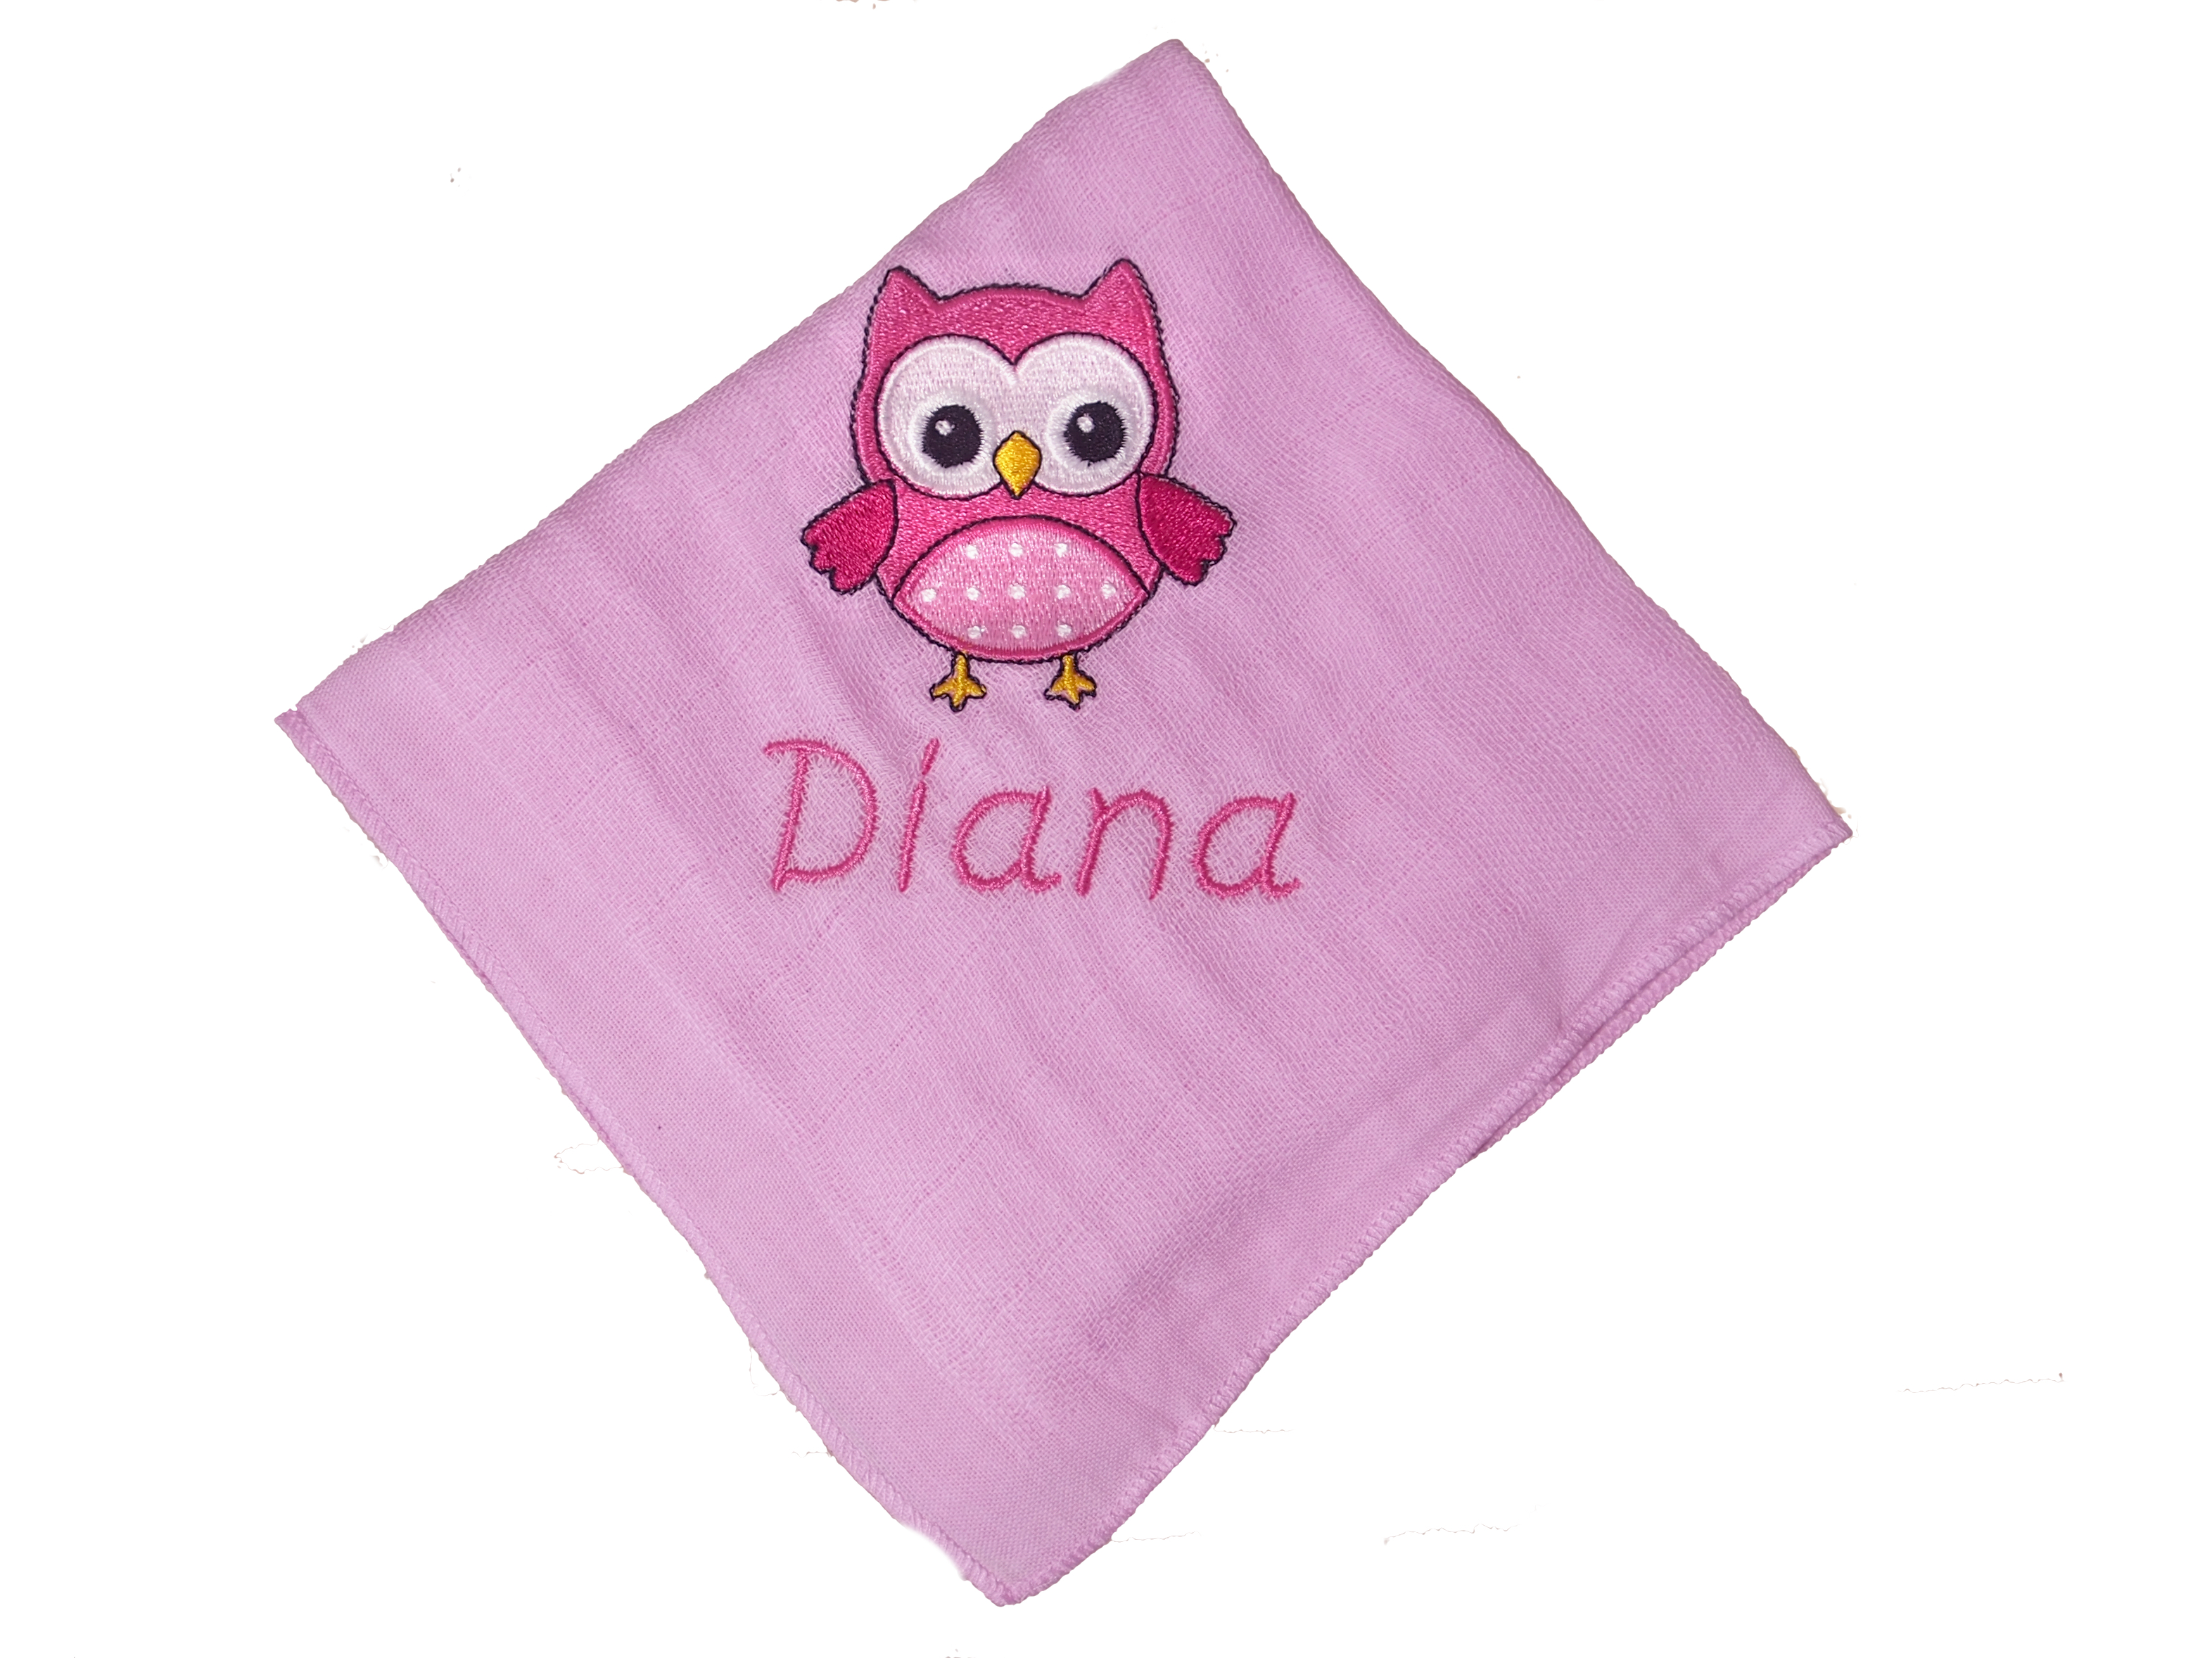 mit motiv gestickt nuscheli personalisiertes nuggiketteli. Black Bedroom Furniture Sets. Home Design Ideas